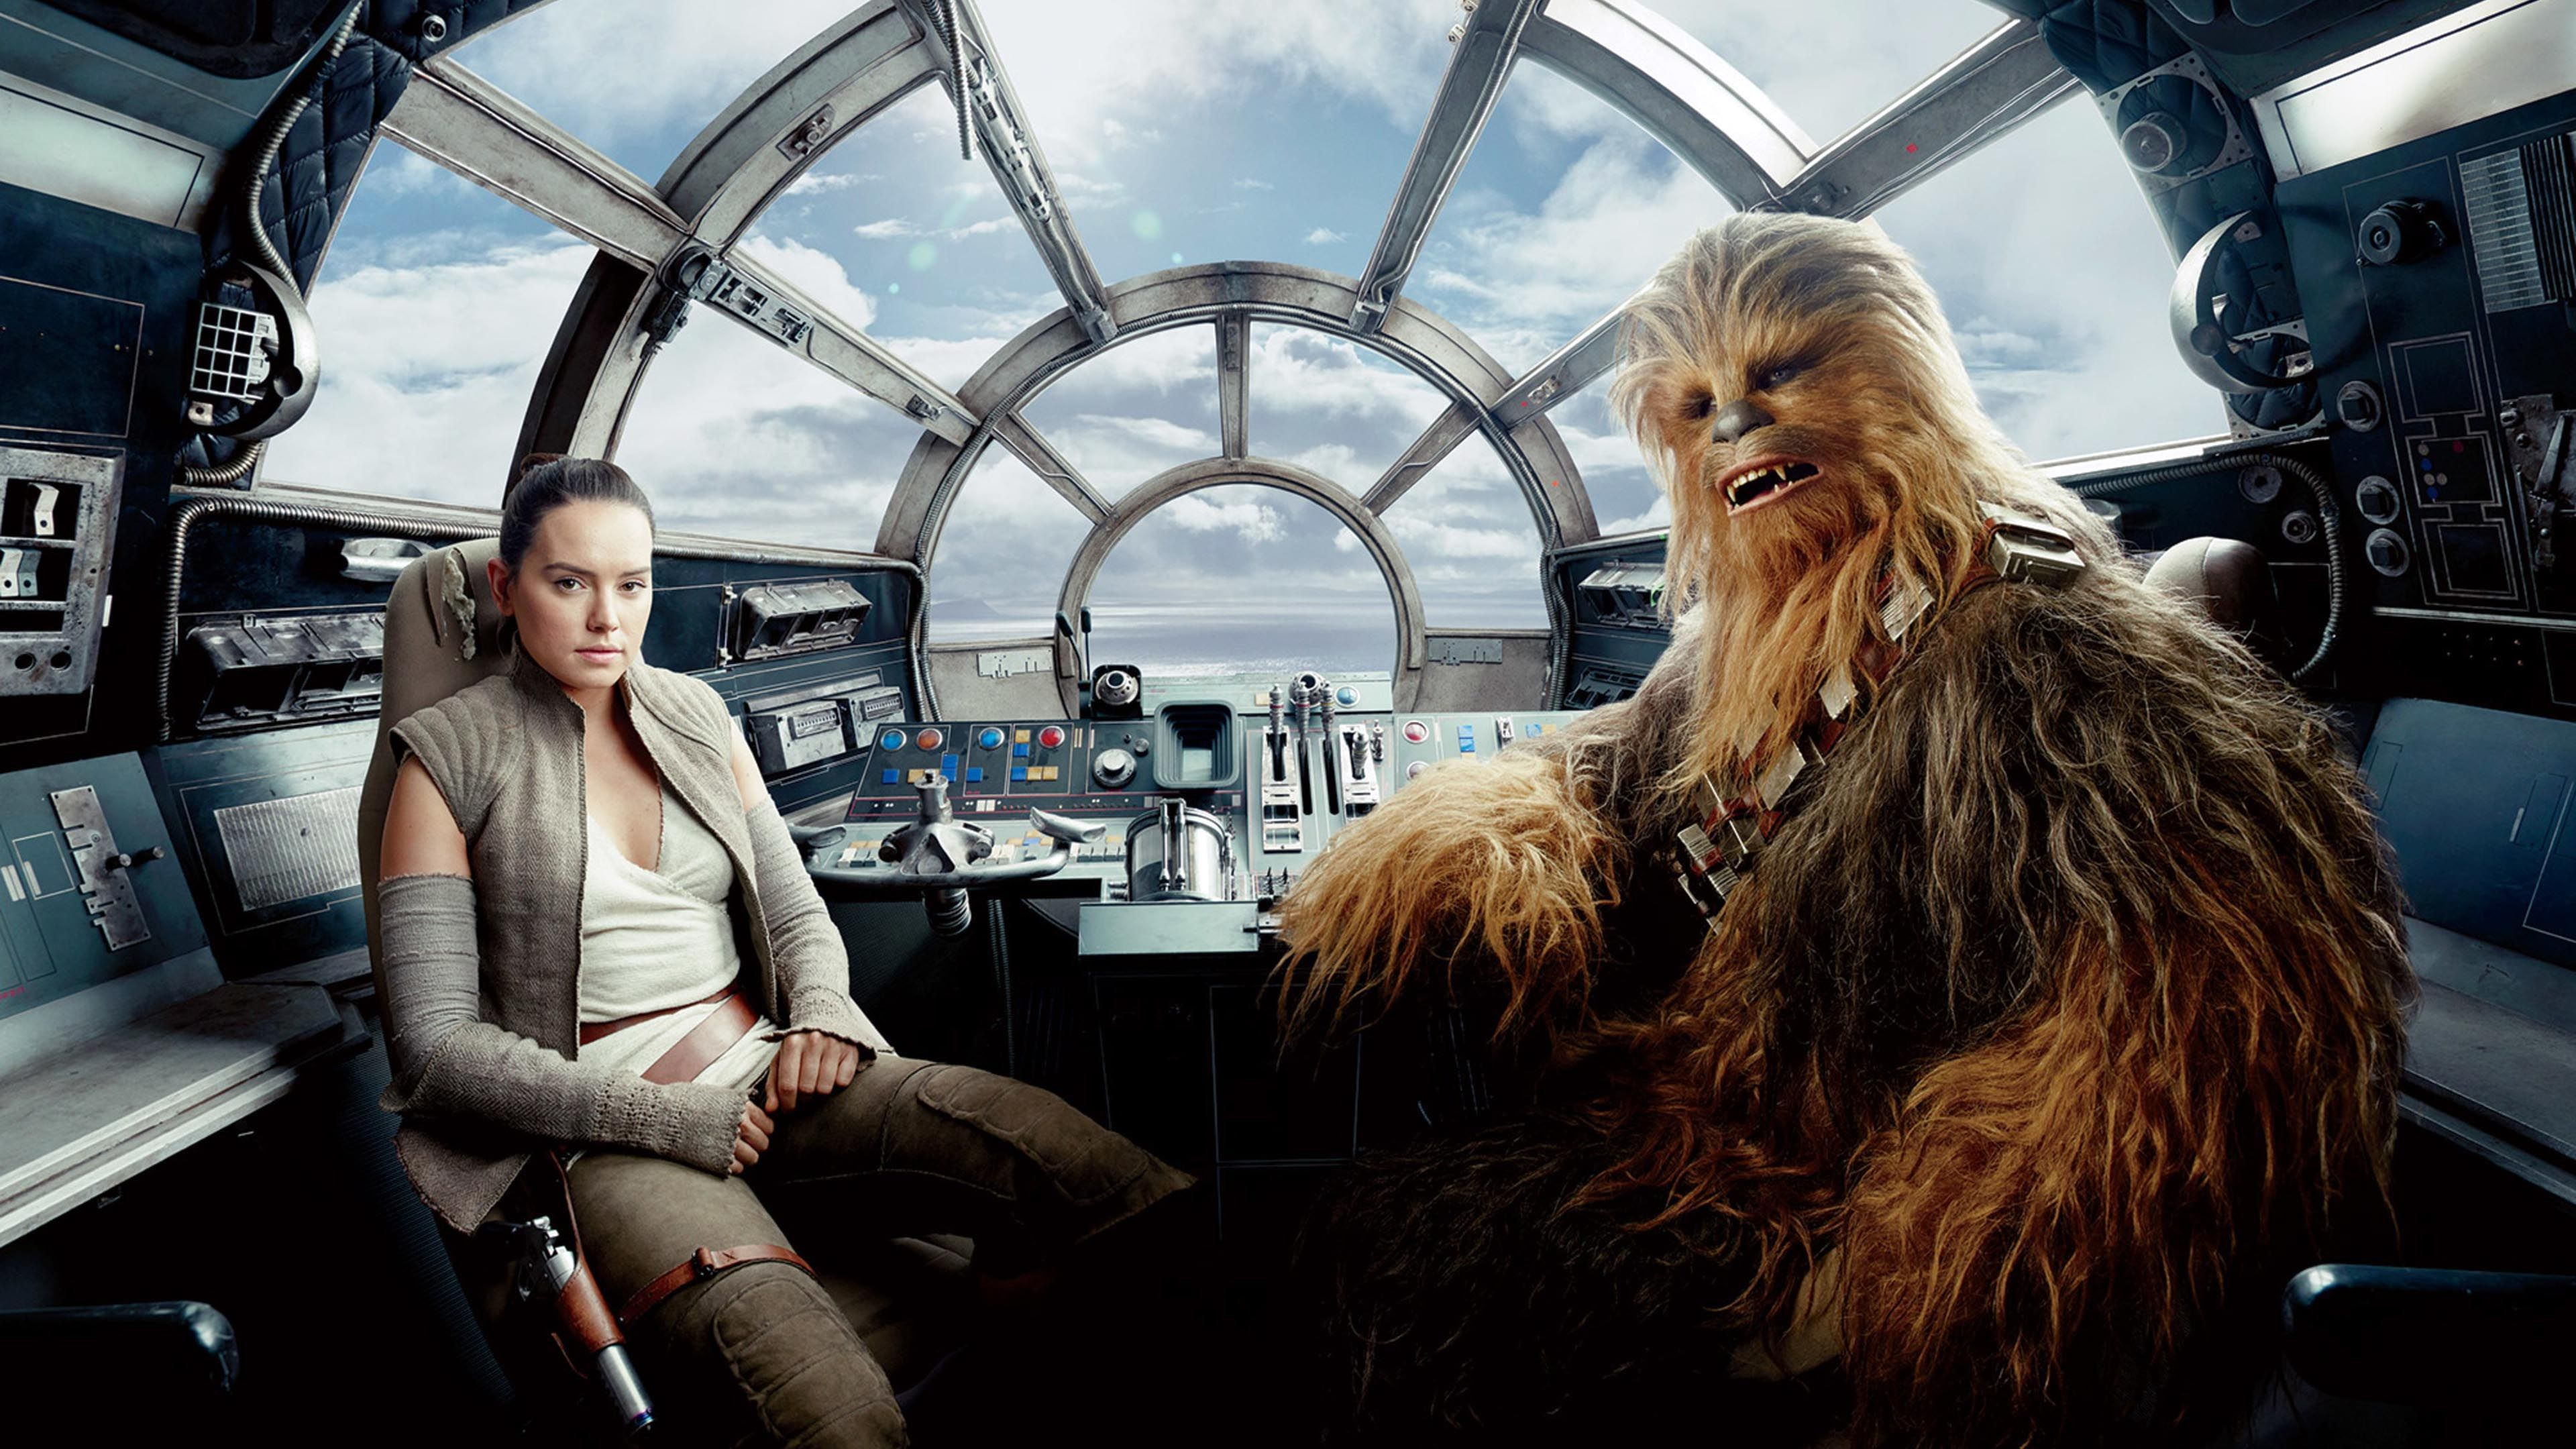 Rey And Chewbacca In The Millennium Falcon S Cockpit Star Wars The Last Jedi 3840x2160 Wallpaper New Star Wars Star Wars Chewbacca Star Wars Art